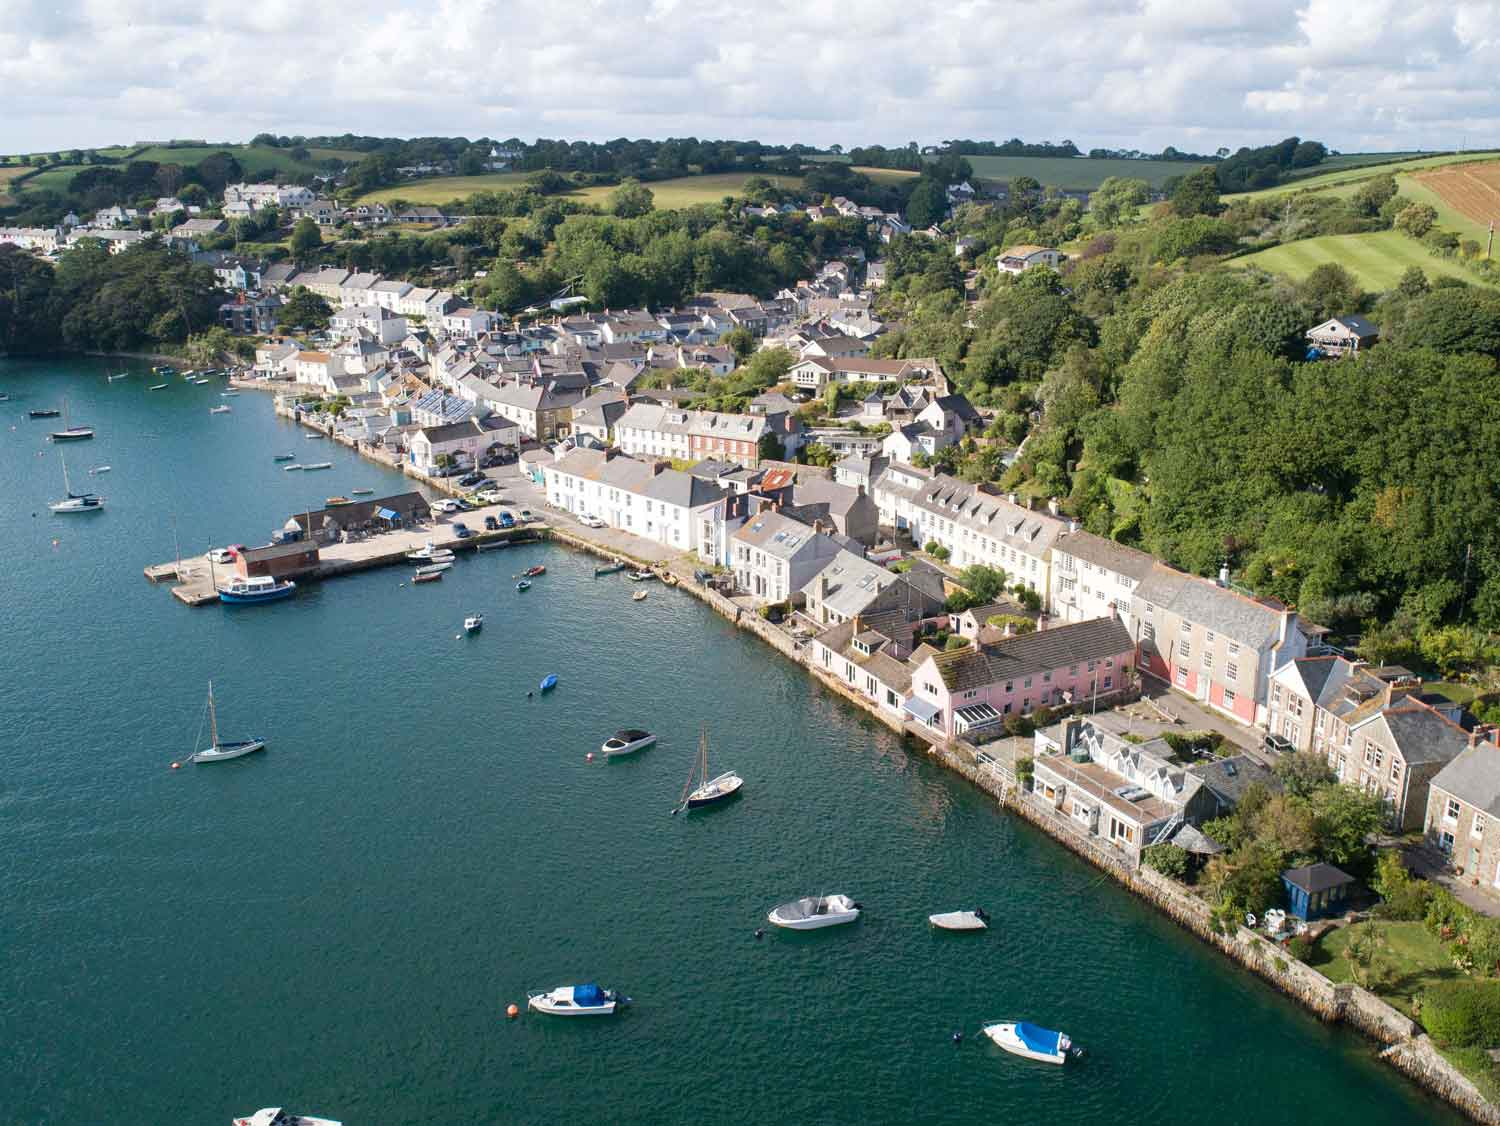 Drone Photograph of Flushing Cornwall